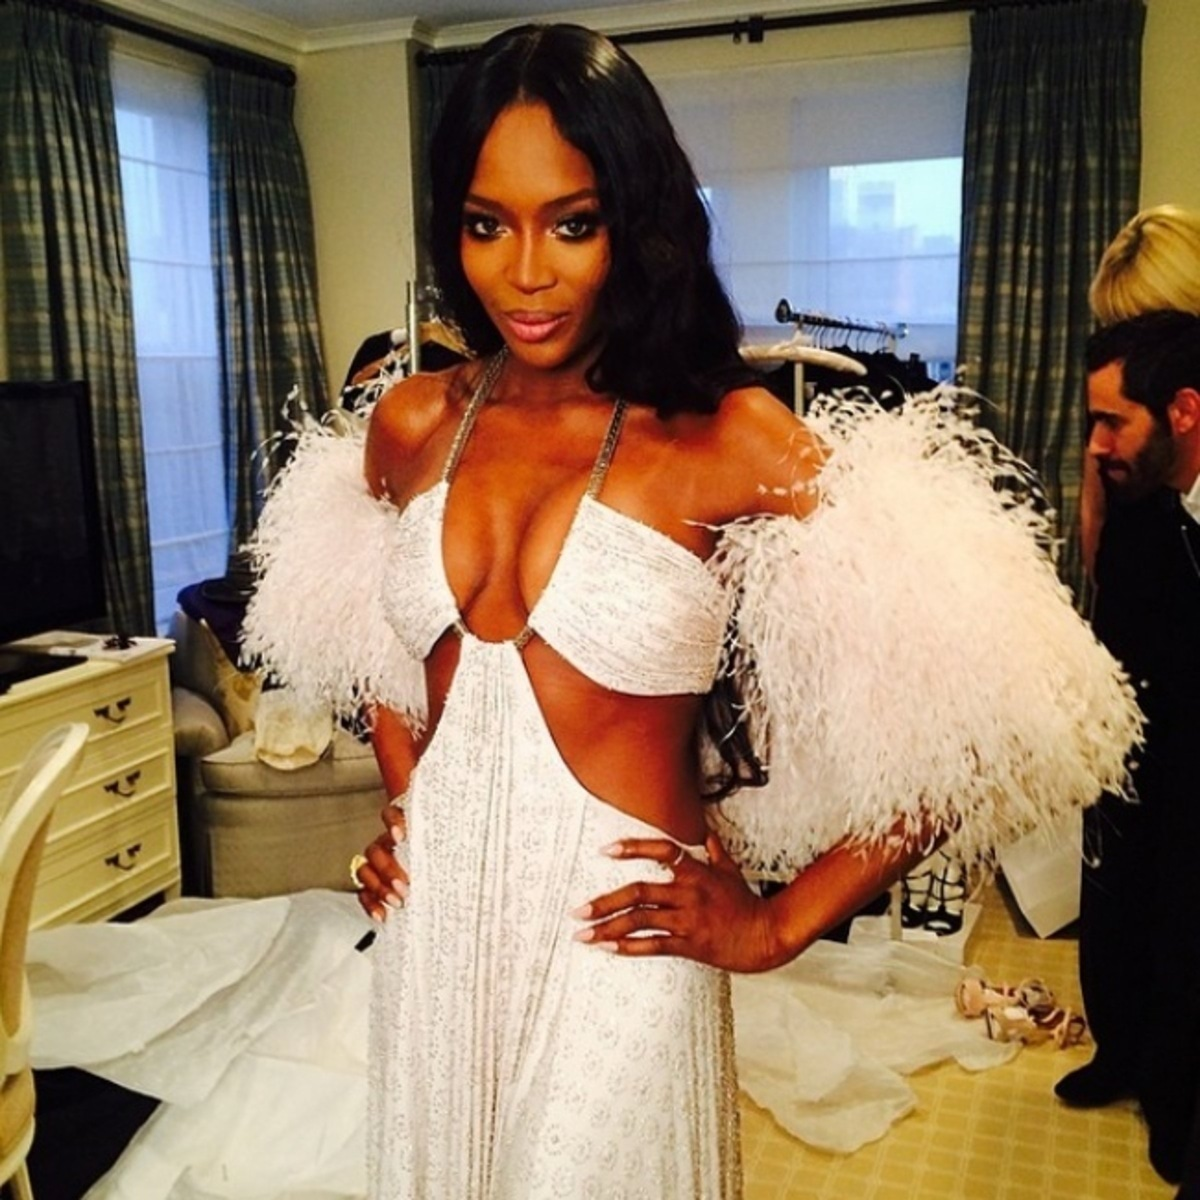 8470660-holding-naomi-campbell-instagram_141021262941-1-1483703164-650-5ba043a0d0-1483815344